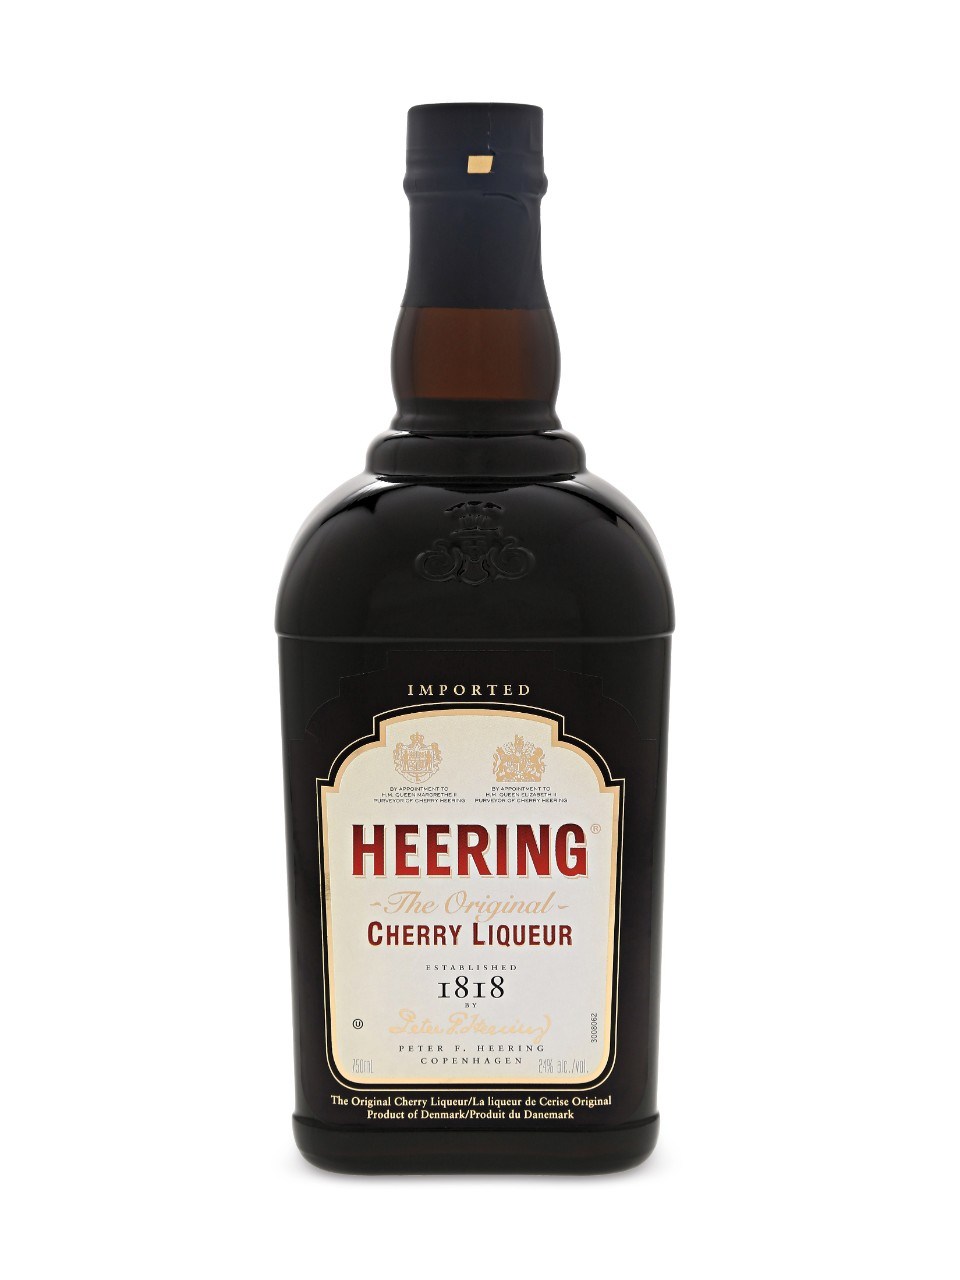 Heering Cherry Liqueur from LCBO